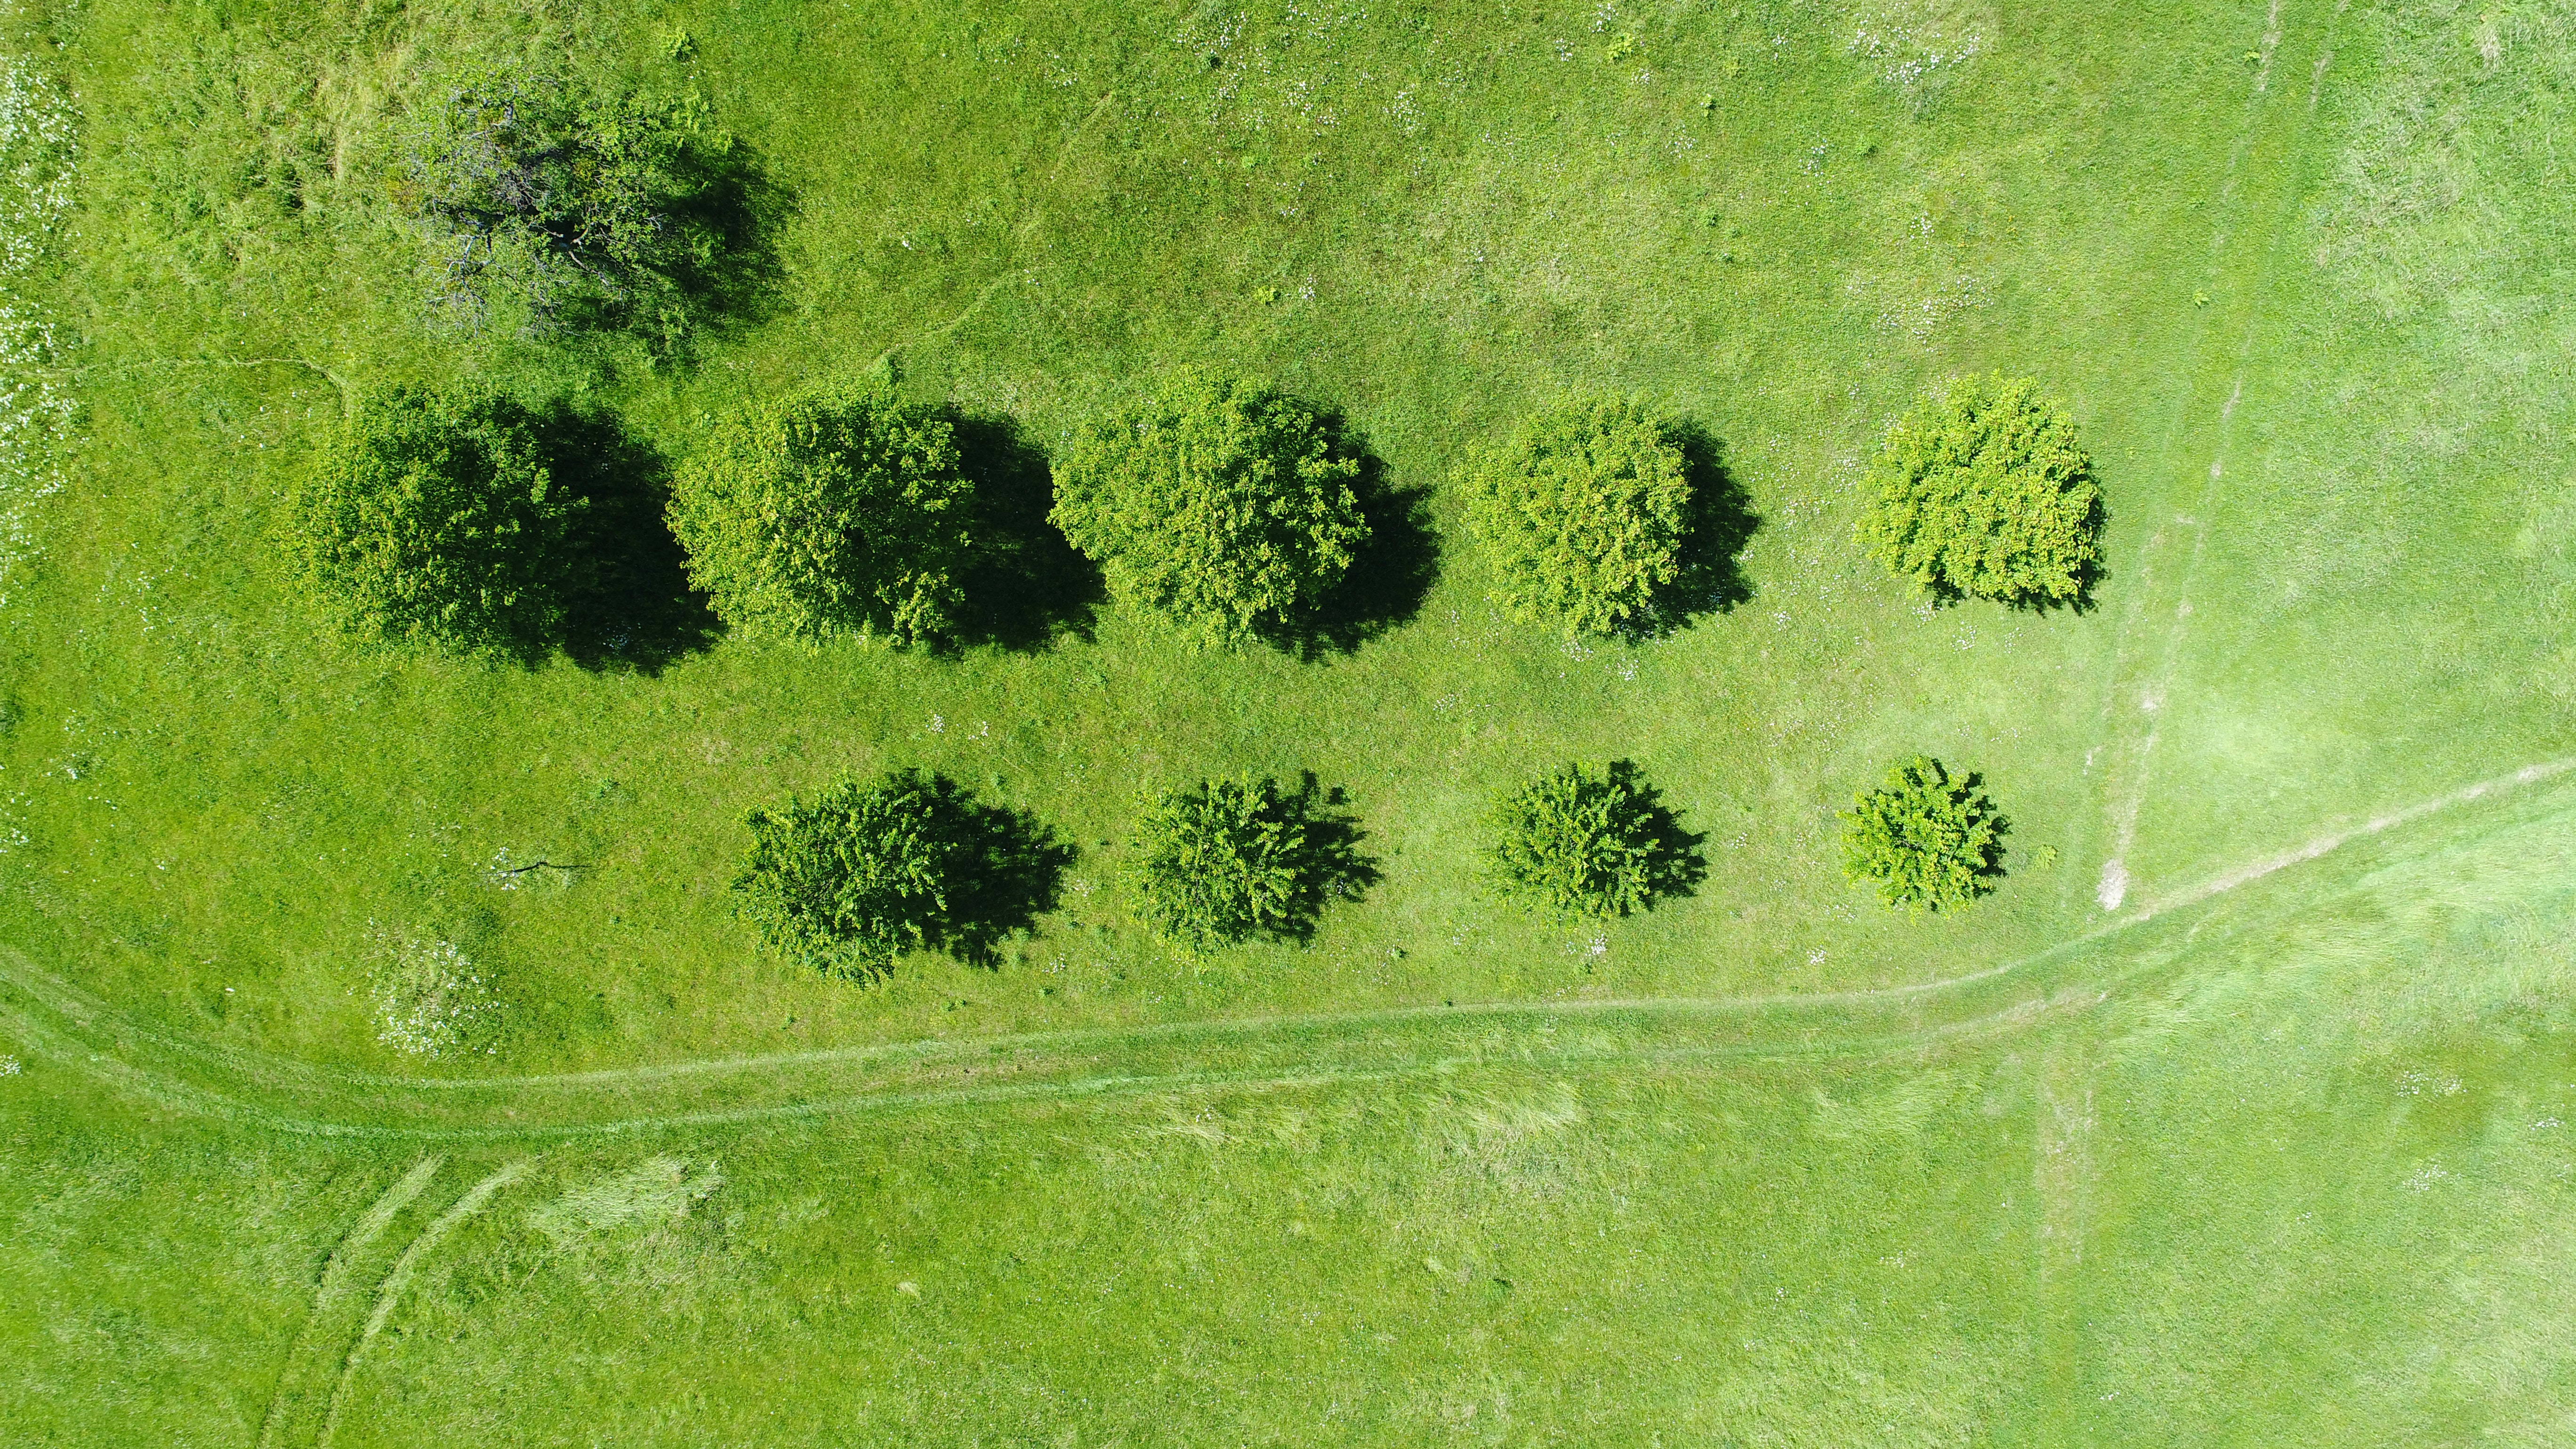 A drone shot of several trees in rows in a green field